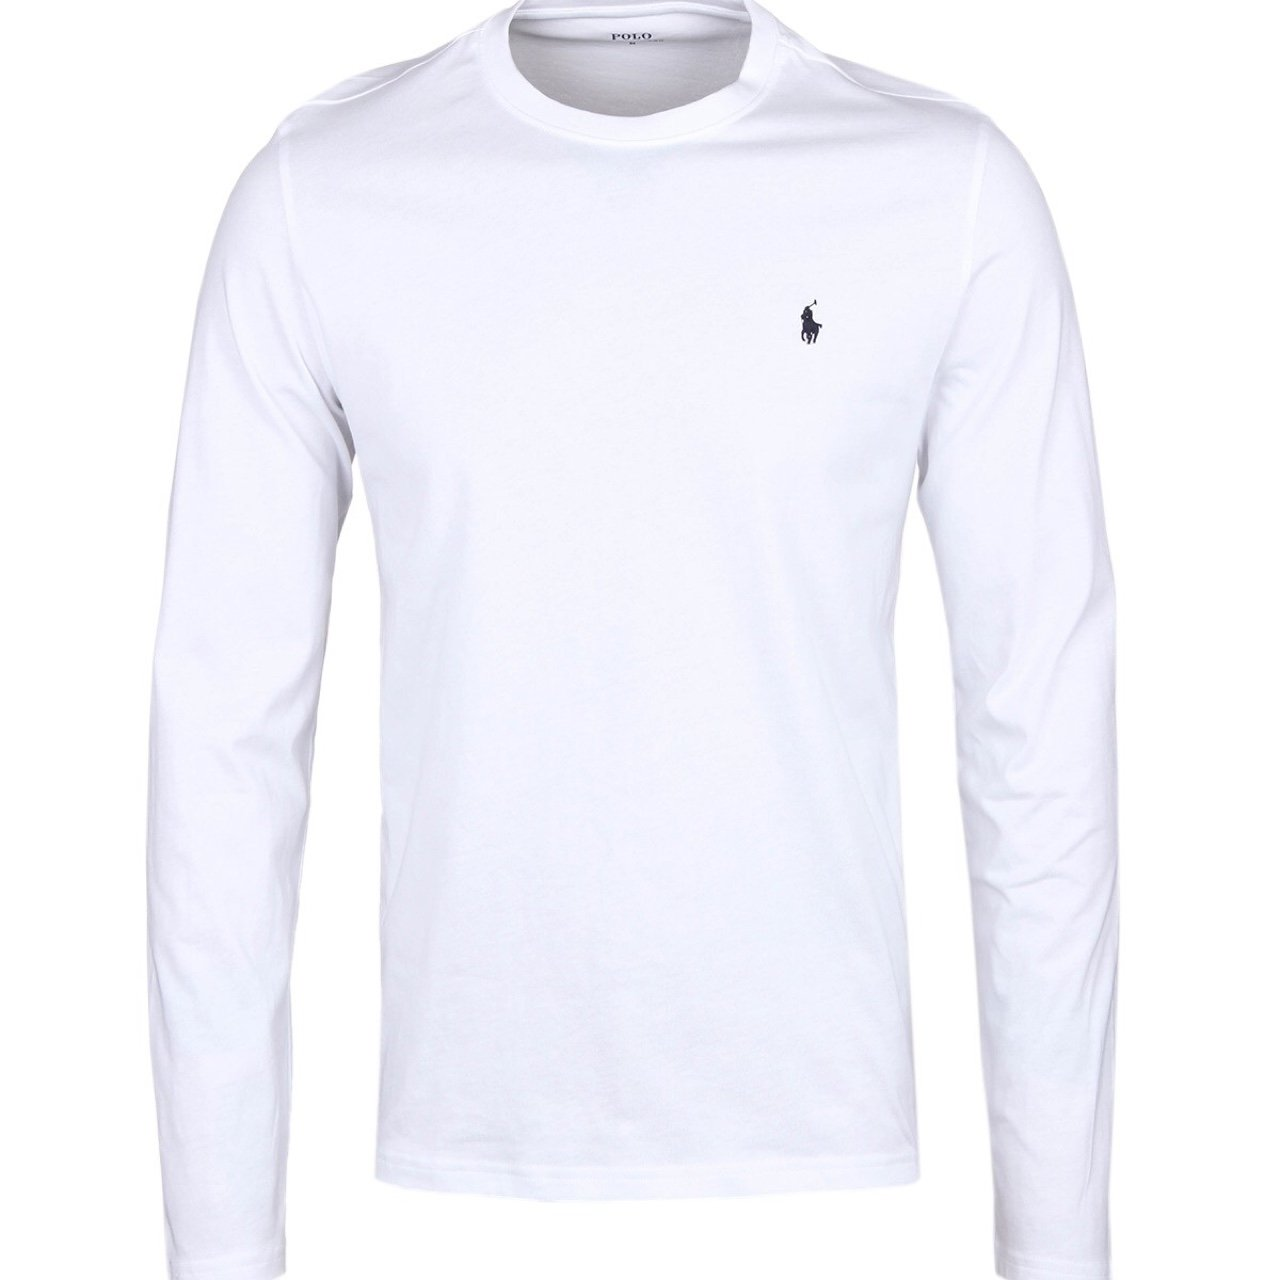 7251ef48 @toby7white. 3 years ago. Oxford, UK. Authentic Polo by Ralph Lauren Long  sleeve Tee in White ...